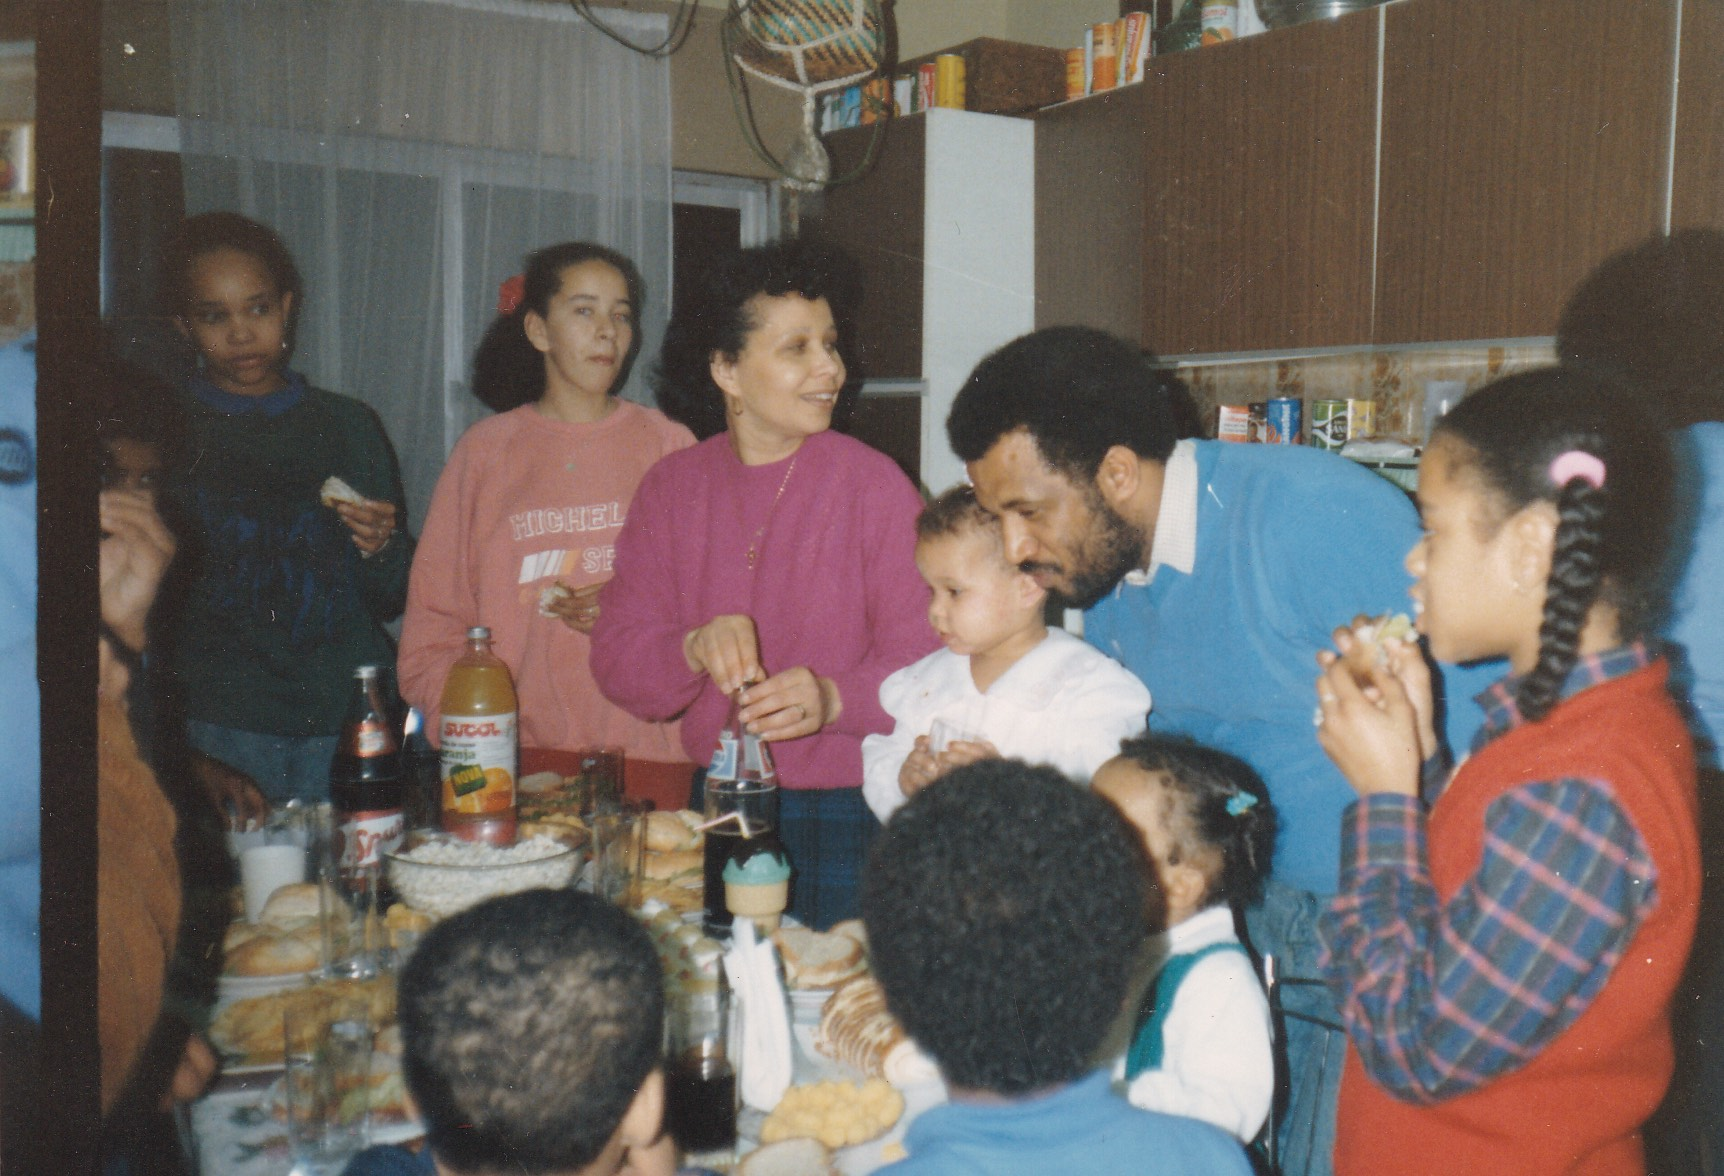 The da Graça family gathers over the kitchen table in Lisbon, Portugal in 1987 to celebrate Margarida's birthday.